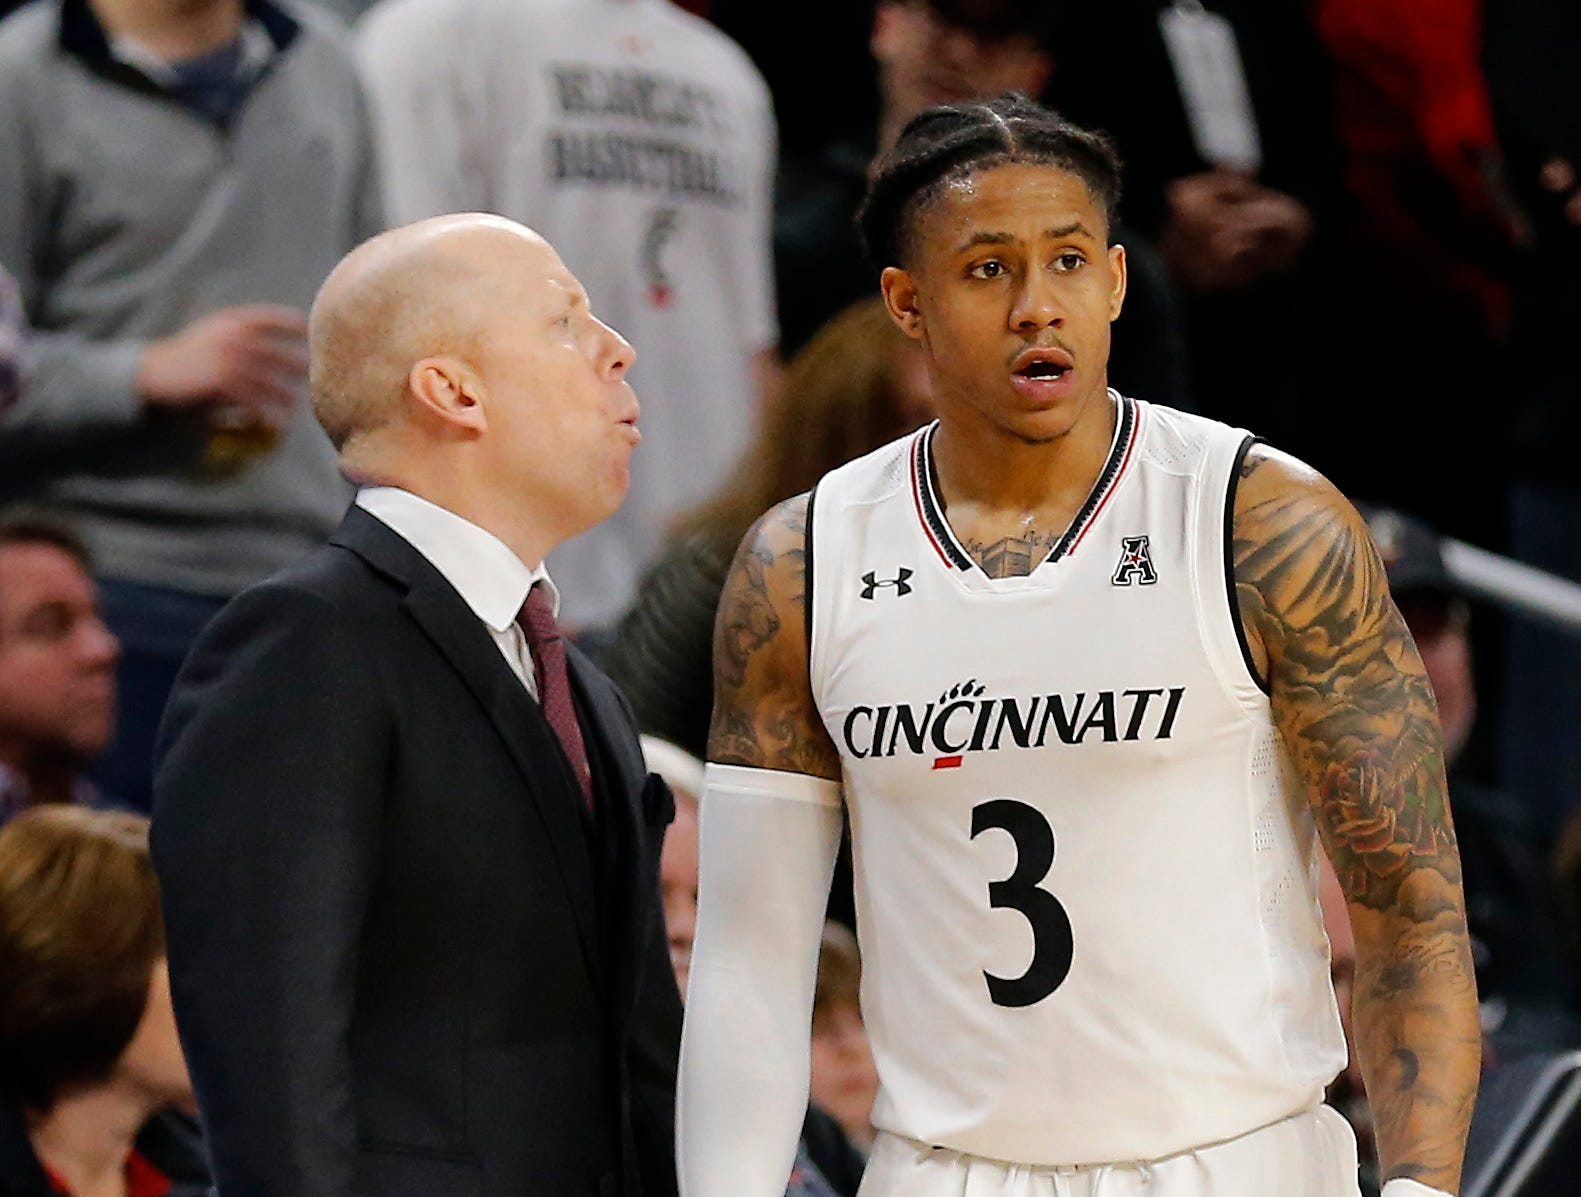 Cincinnati Bearcats head coach Mick Cronin shouts at guard Justin Jenifer (3) in the second half the the NCAA American Athletic Conference basketball game between the Cincinnati Bearcats and the Southern Methodist Mustangs at Fifth Third Arena in Cincinnati on Sunday, Feb. 3, 2019. The Bearcats edged out SMU for a 73-68 win.